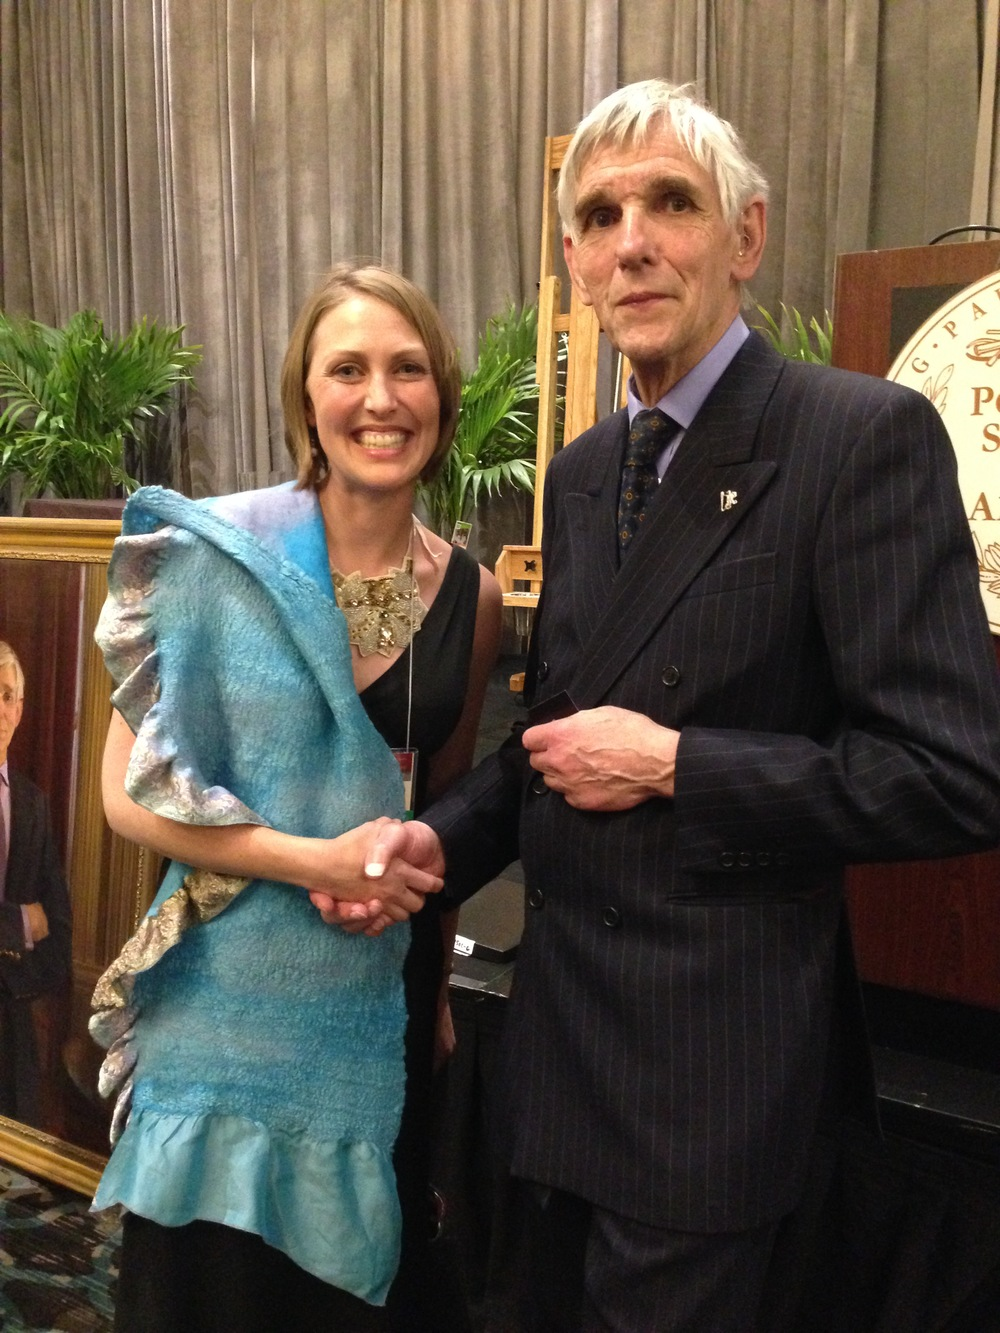 Mardie meets Richard Ormond, grand nephew of John Singer Sargent